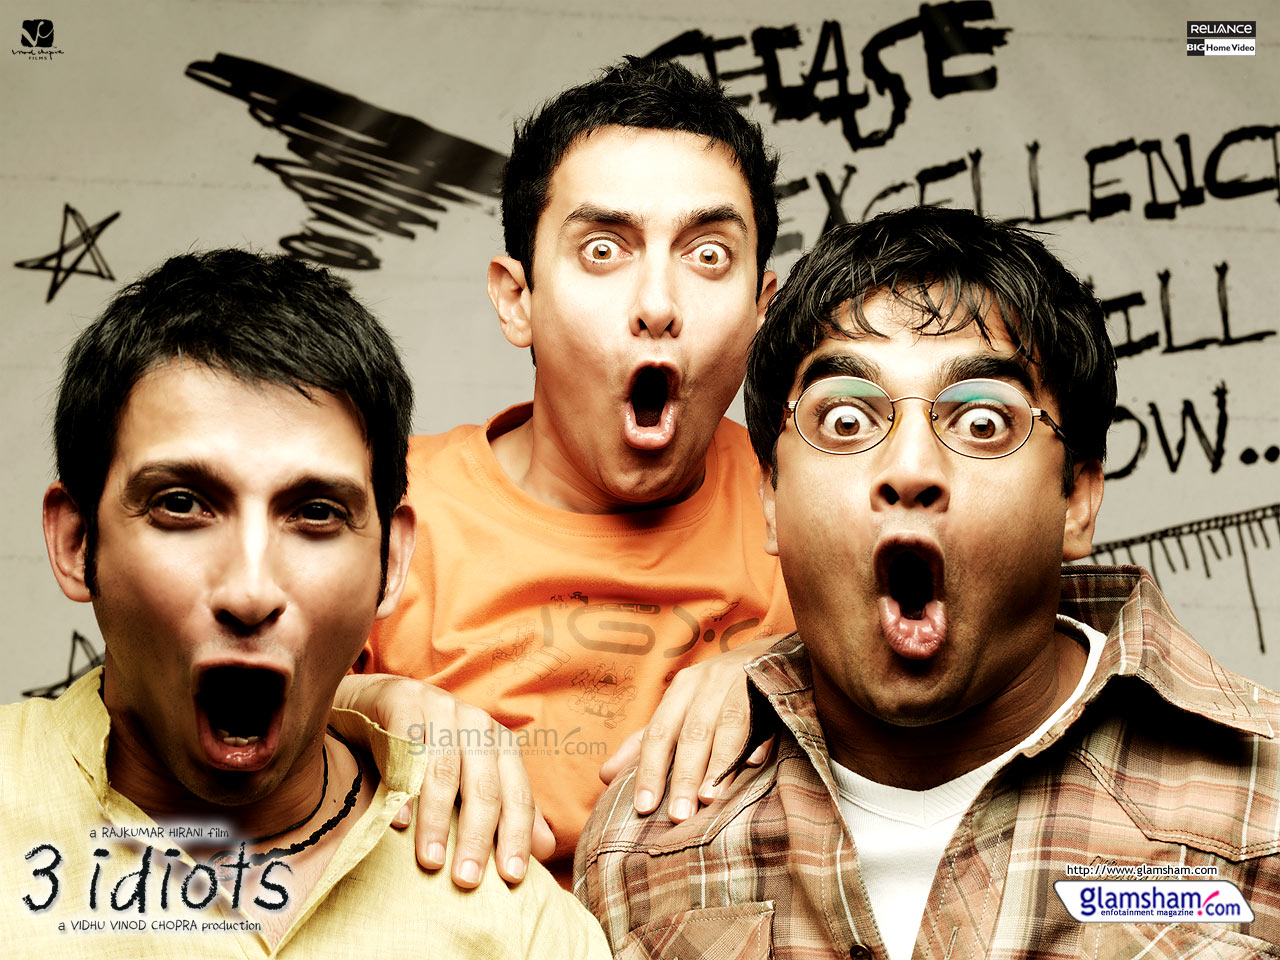 3 idiots characters and descriptions